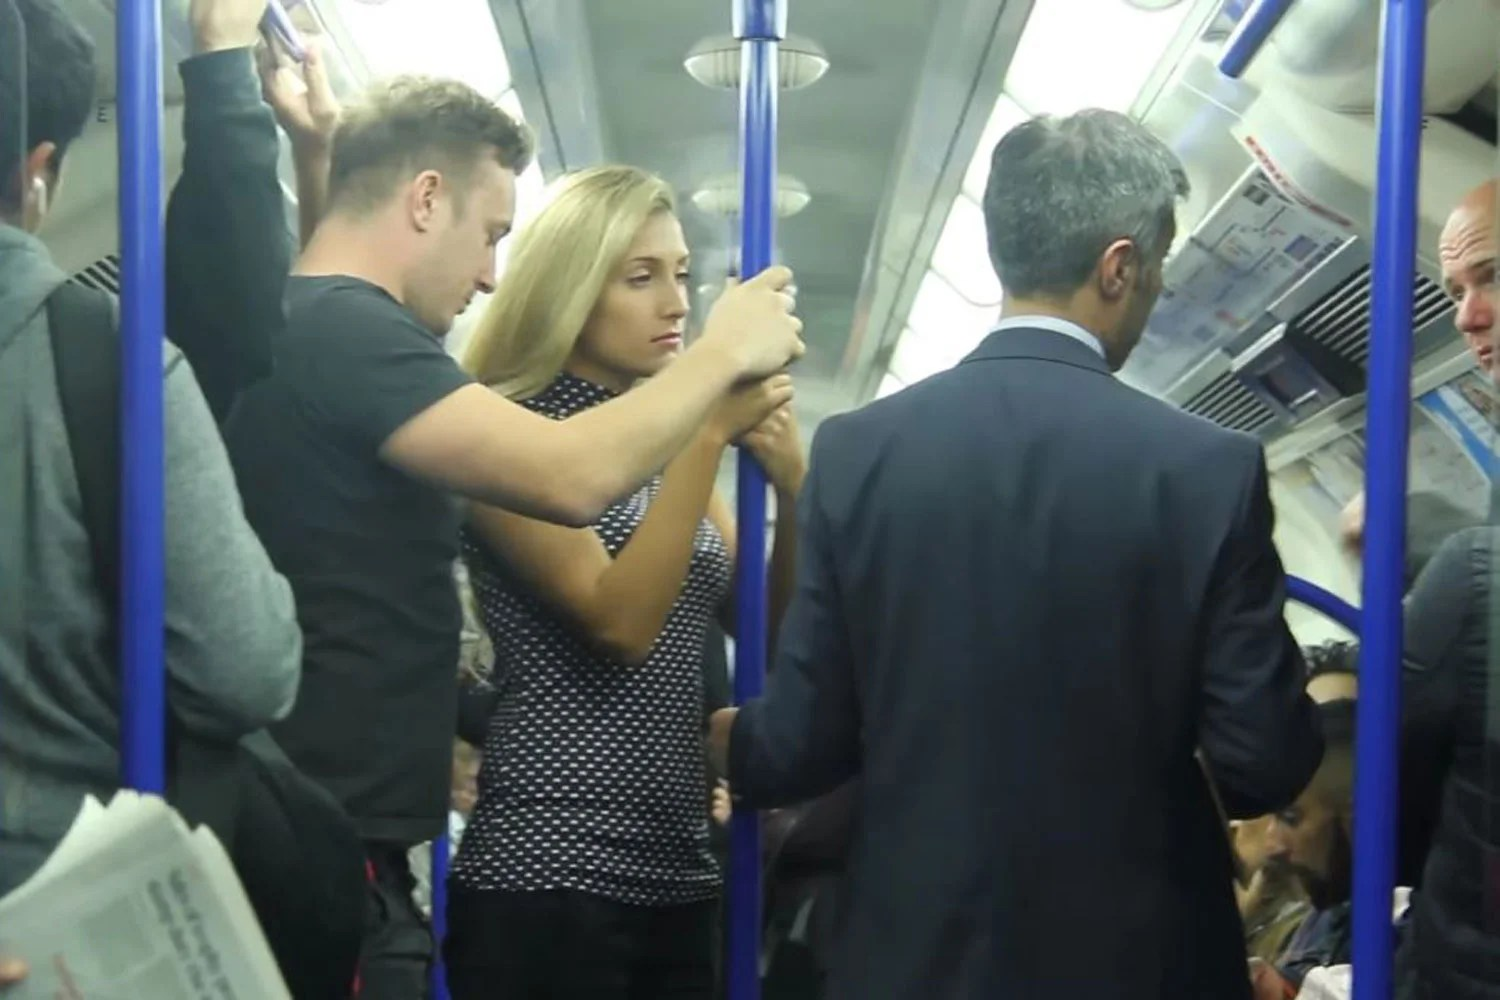 Commuters react in fury to stupid Tube grope prank